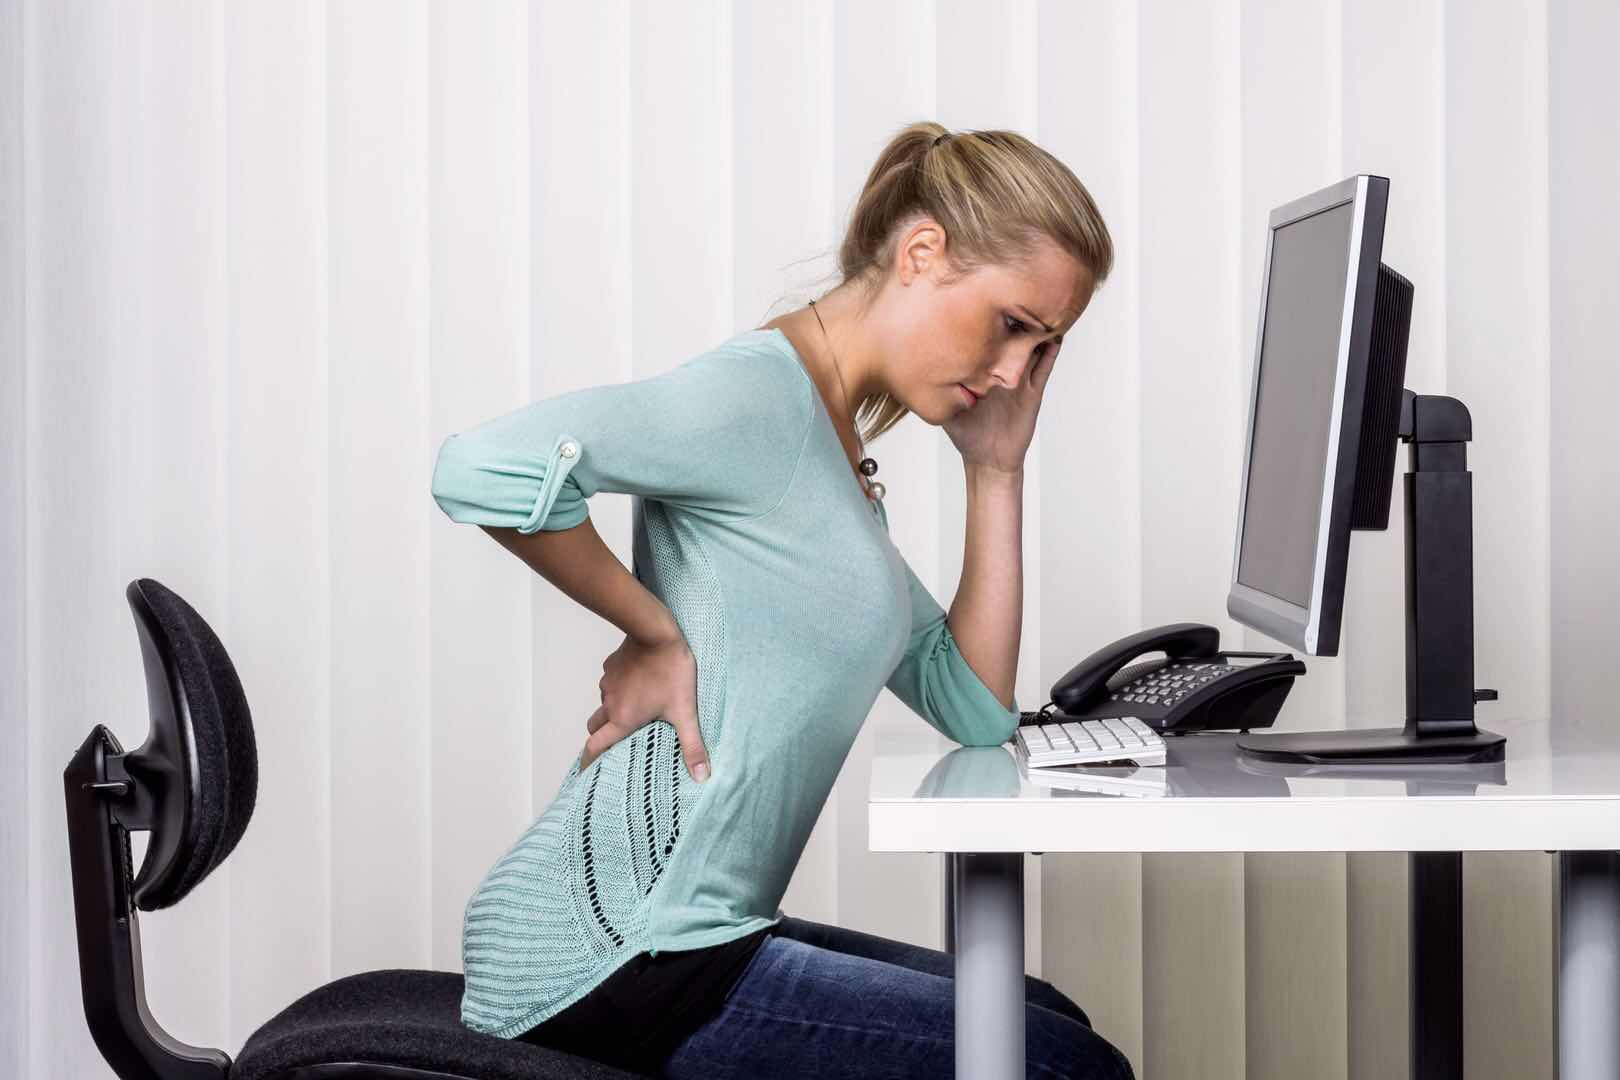 Ways to Make Your Work-From-Home Space More Ergonomic and Better for Your Back